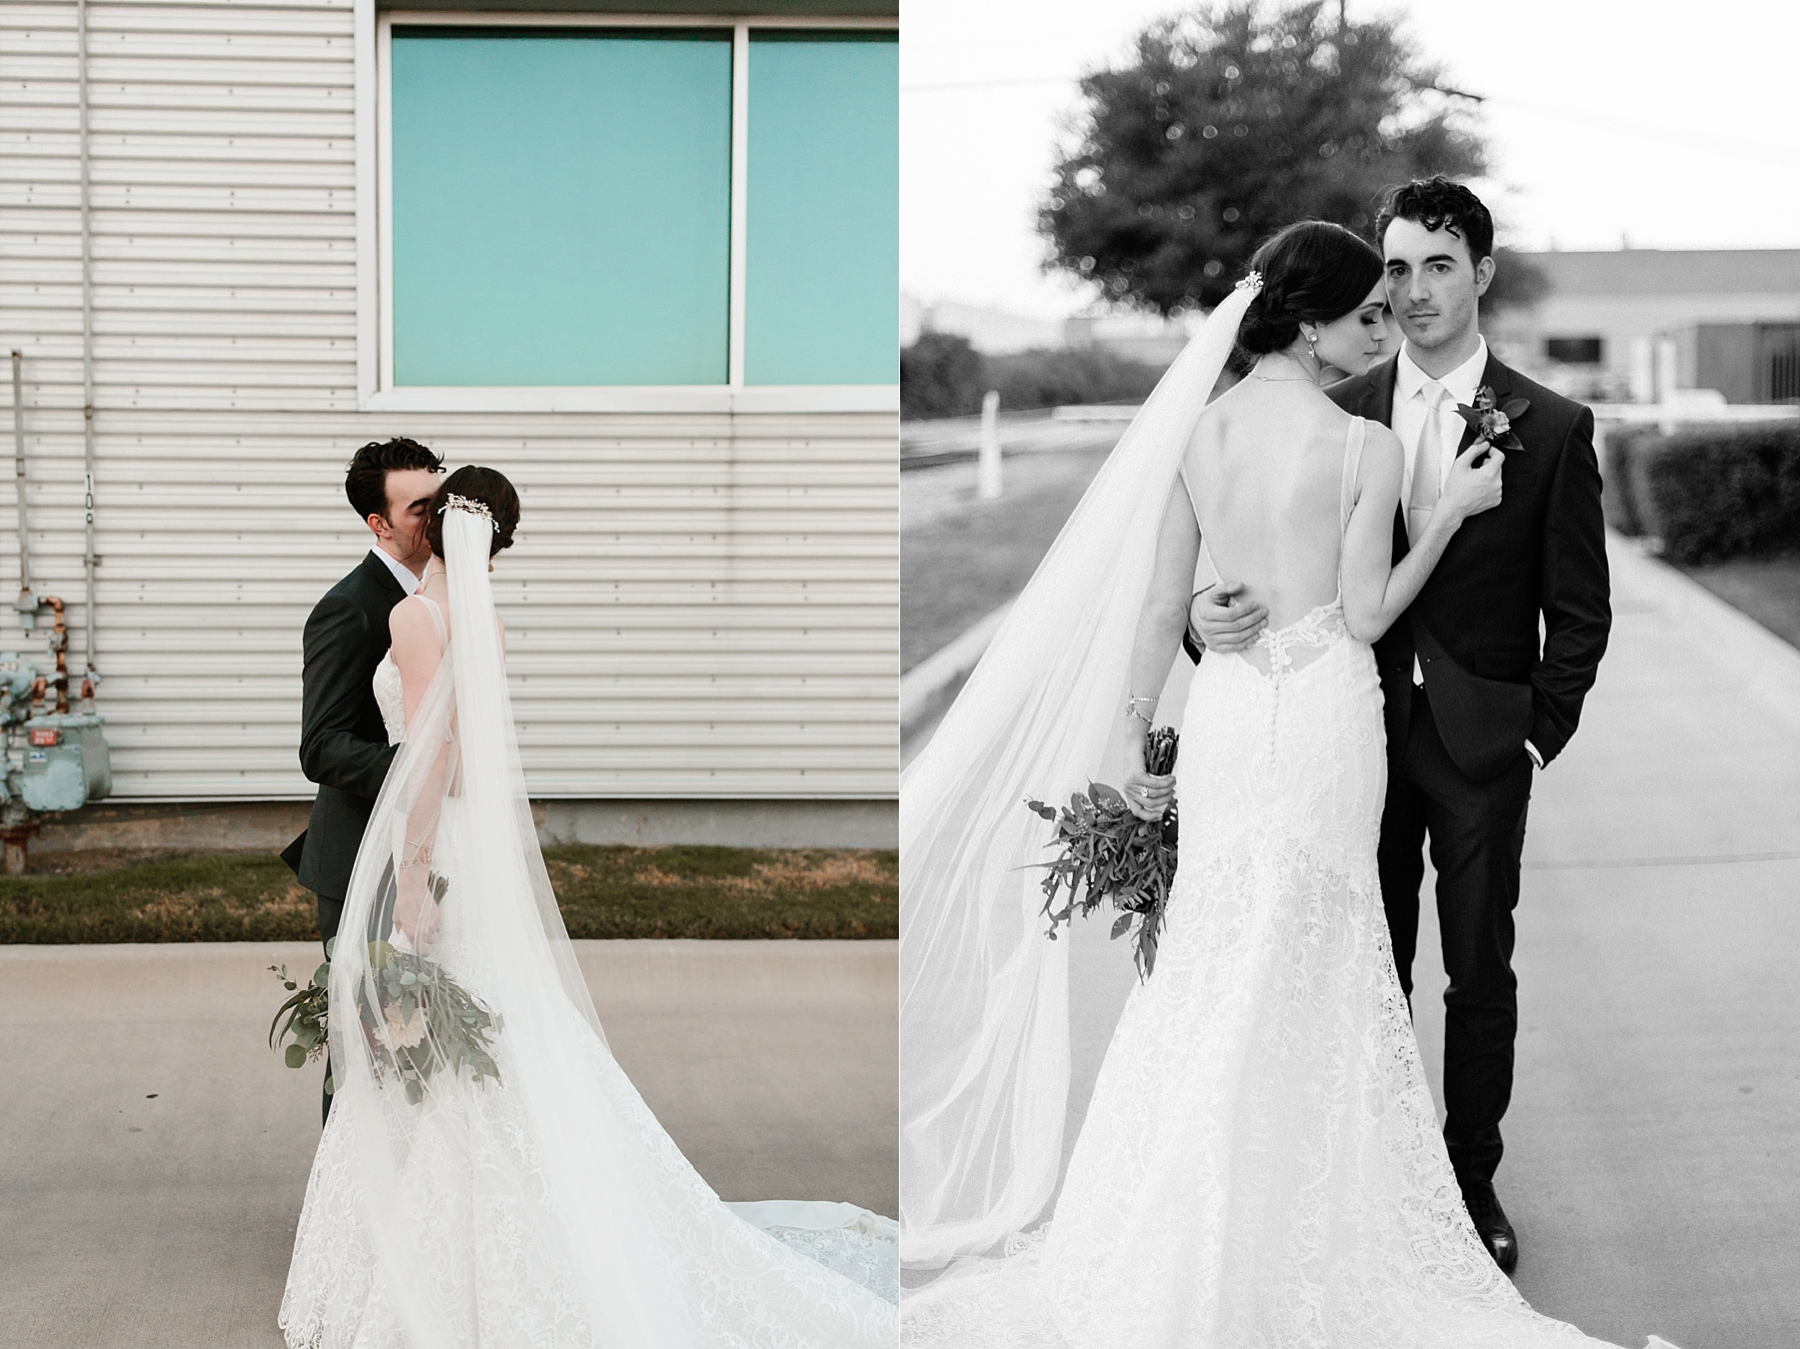 Emily + Caleb _ an elegant, intentional, industrial style wedding with navy + gold accents at 6500 in Dallas, TX by North Texas Wedding Photographer Rachel Meagan Photography _ 125